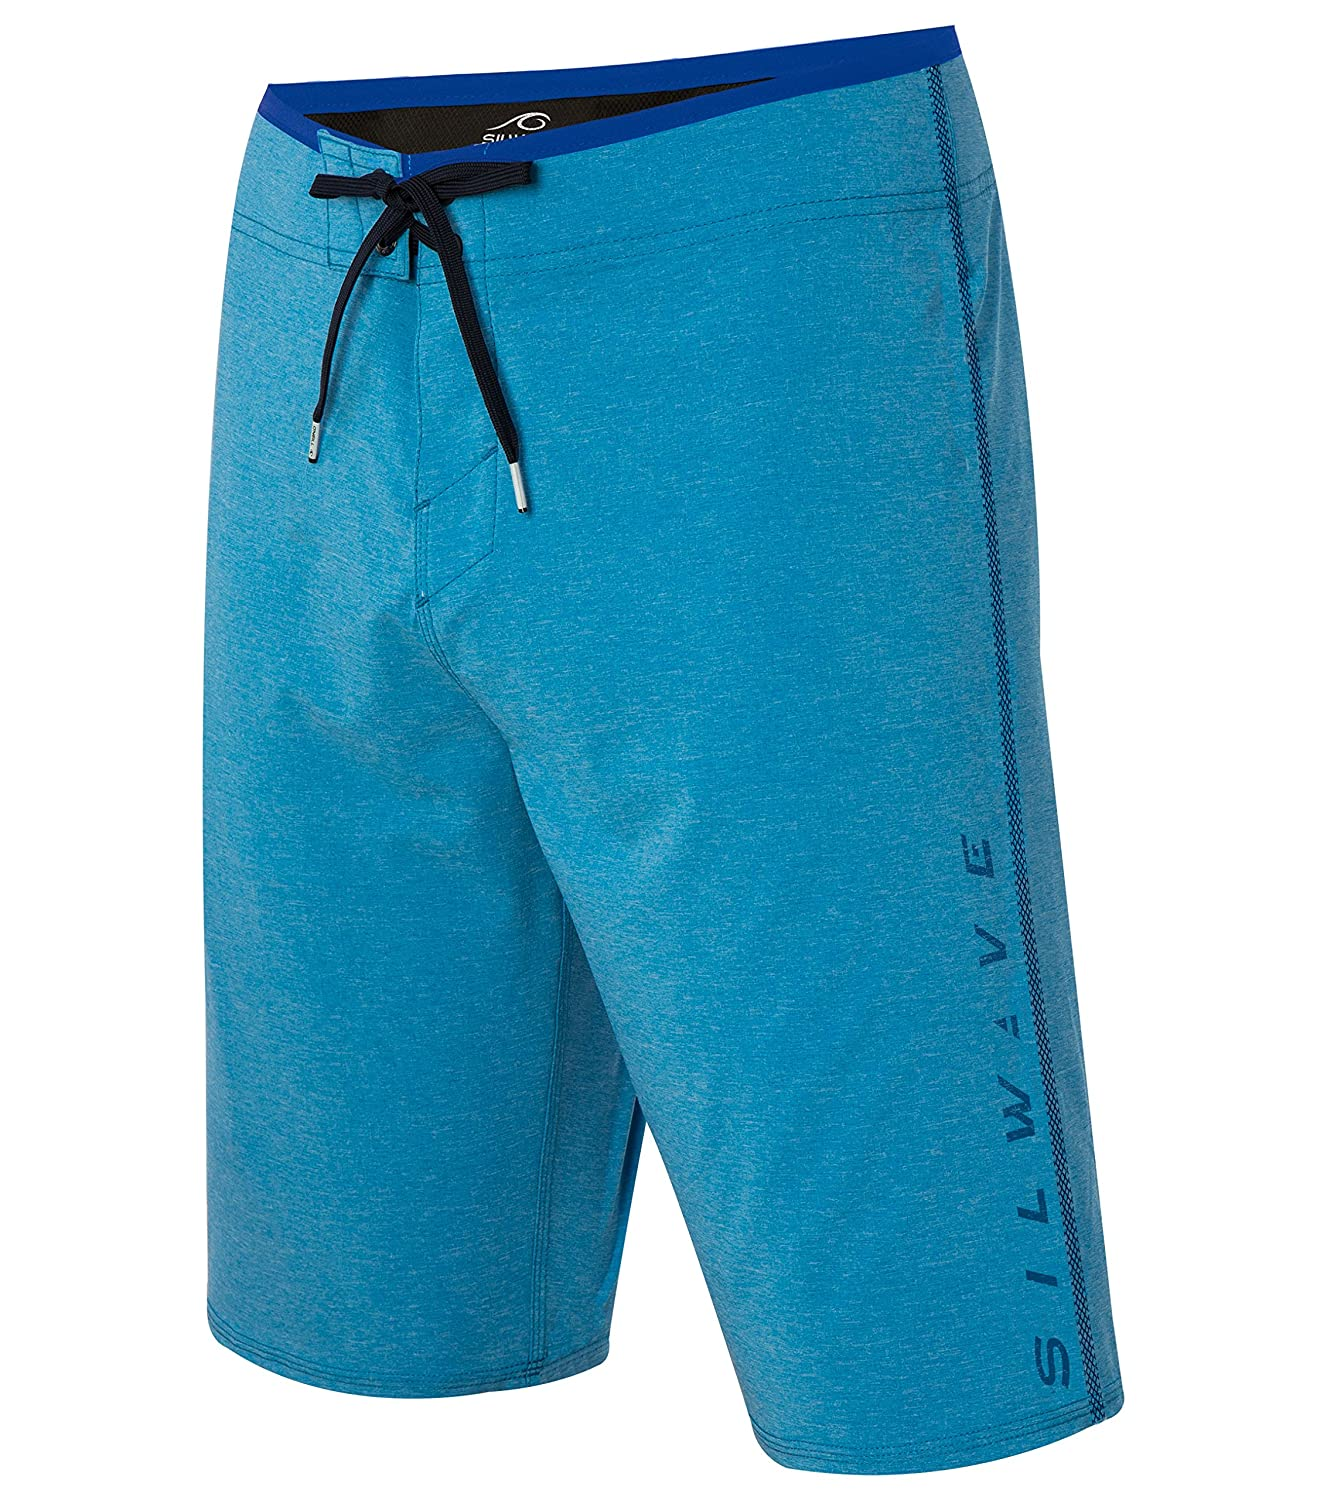 Silwave Men's DuraFit Stretch Solid Boardshort